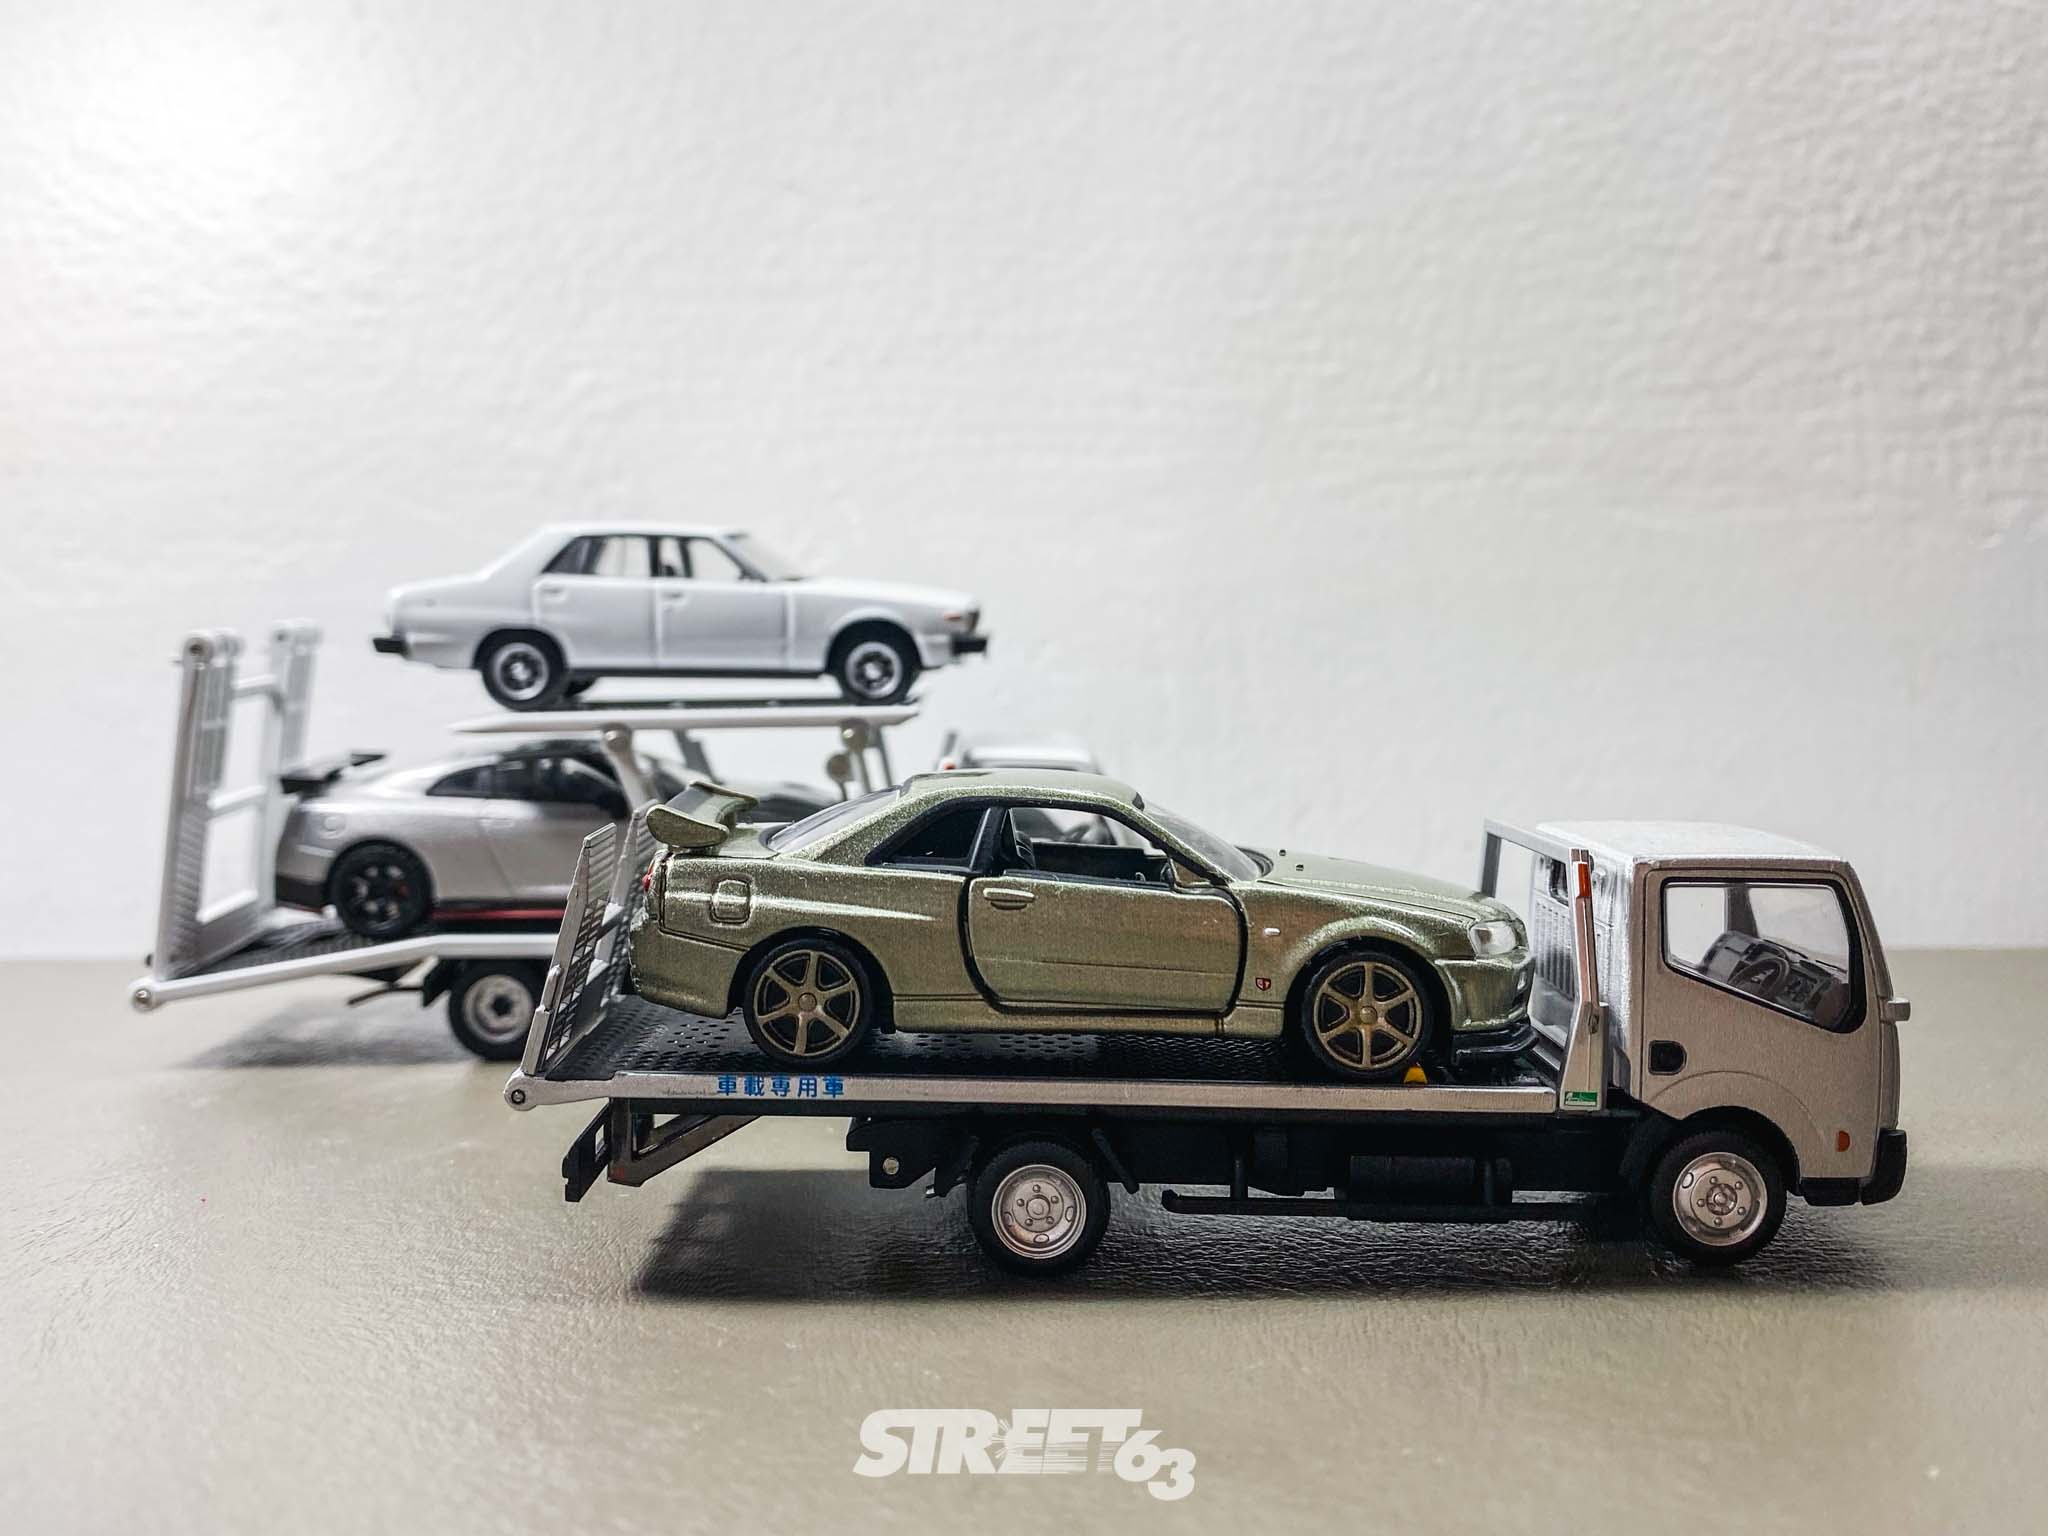 Mini63: The Street63 Diecast Collection 22